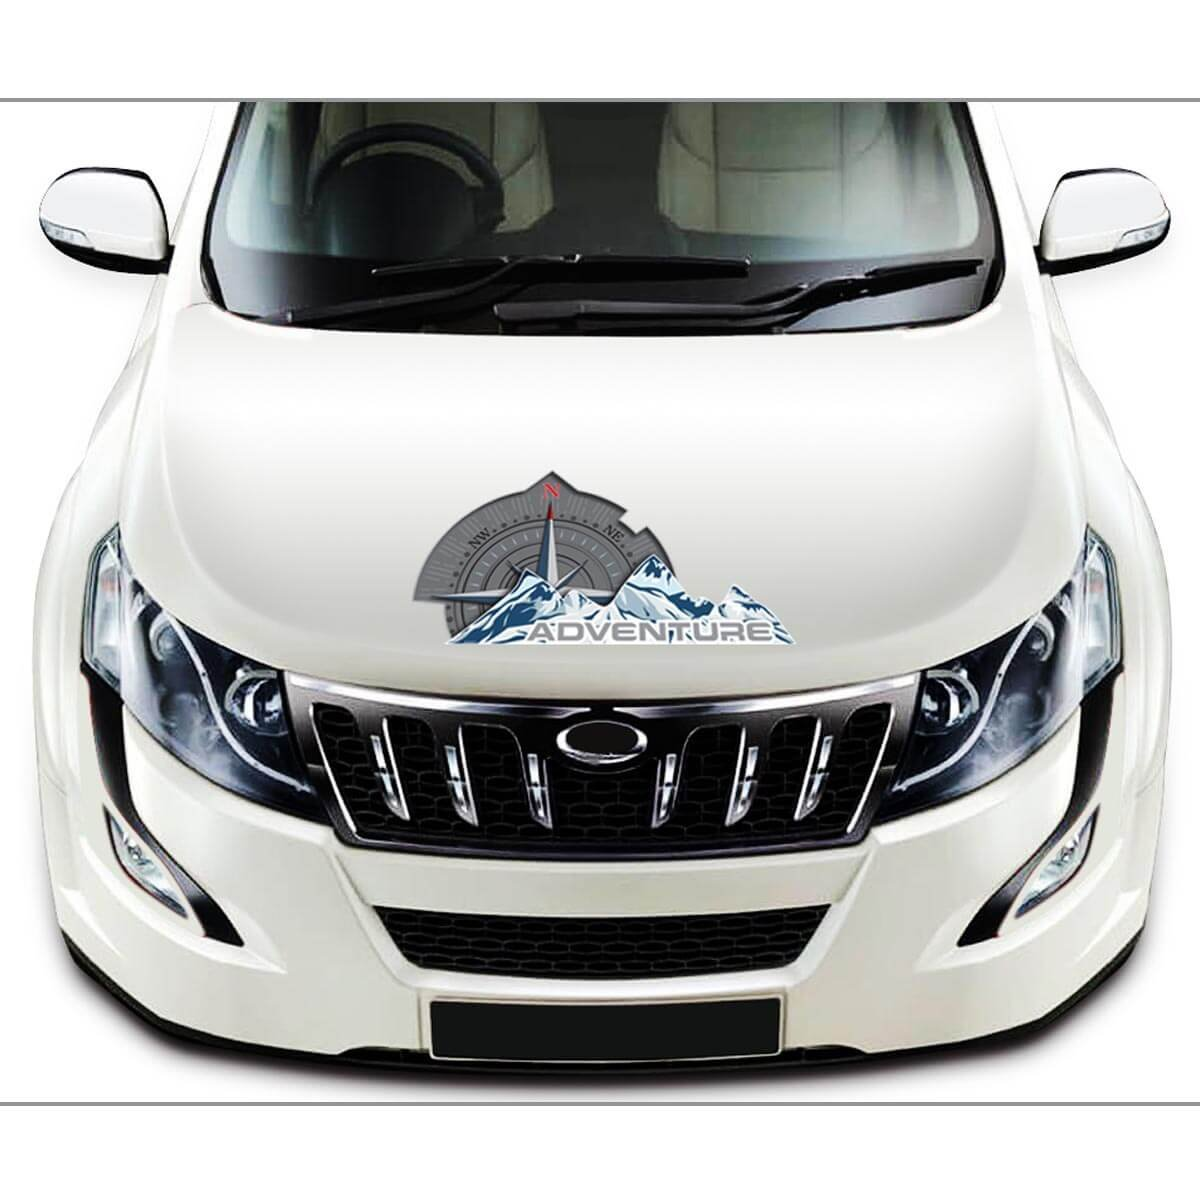 Autographix car sticker graphic decals adventurous soul car styling accessorie amazon in car motorbike